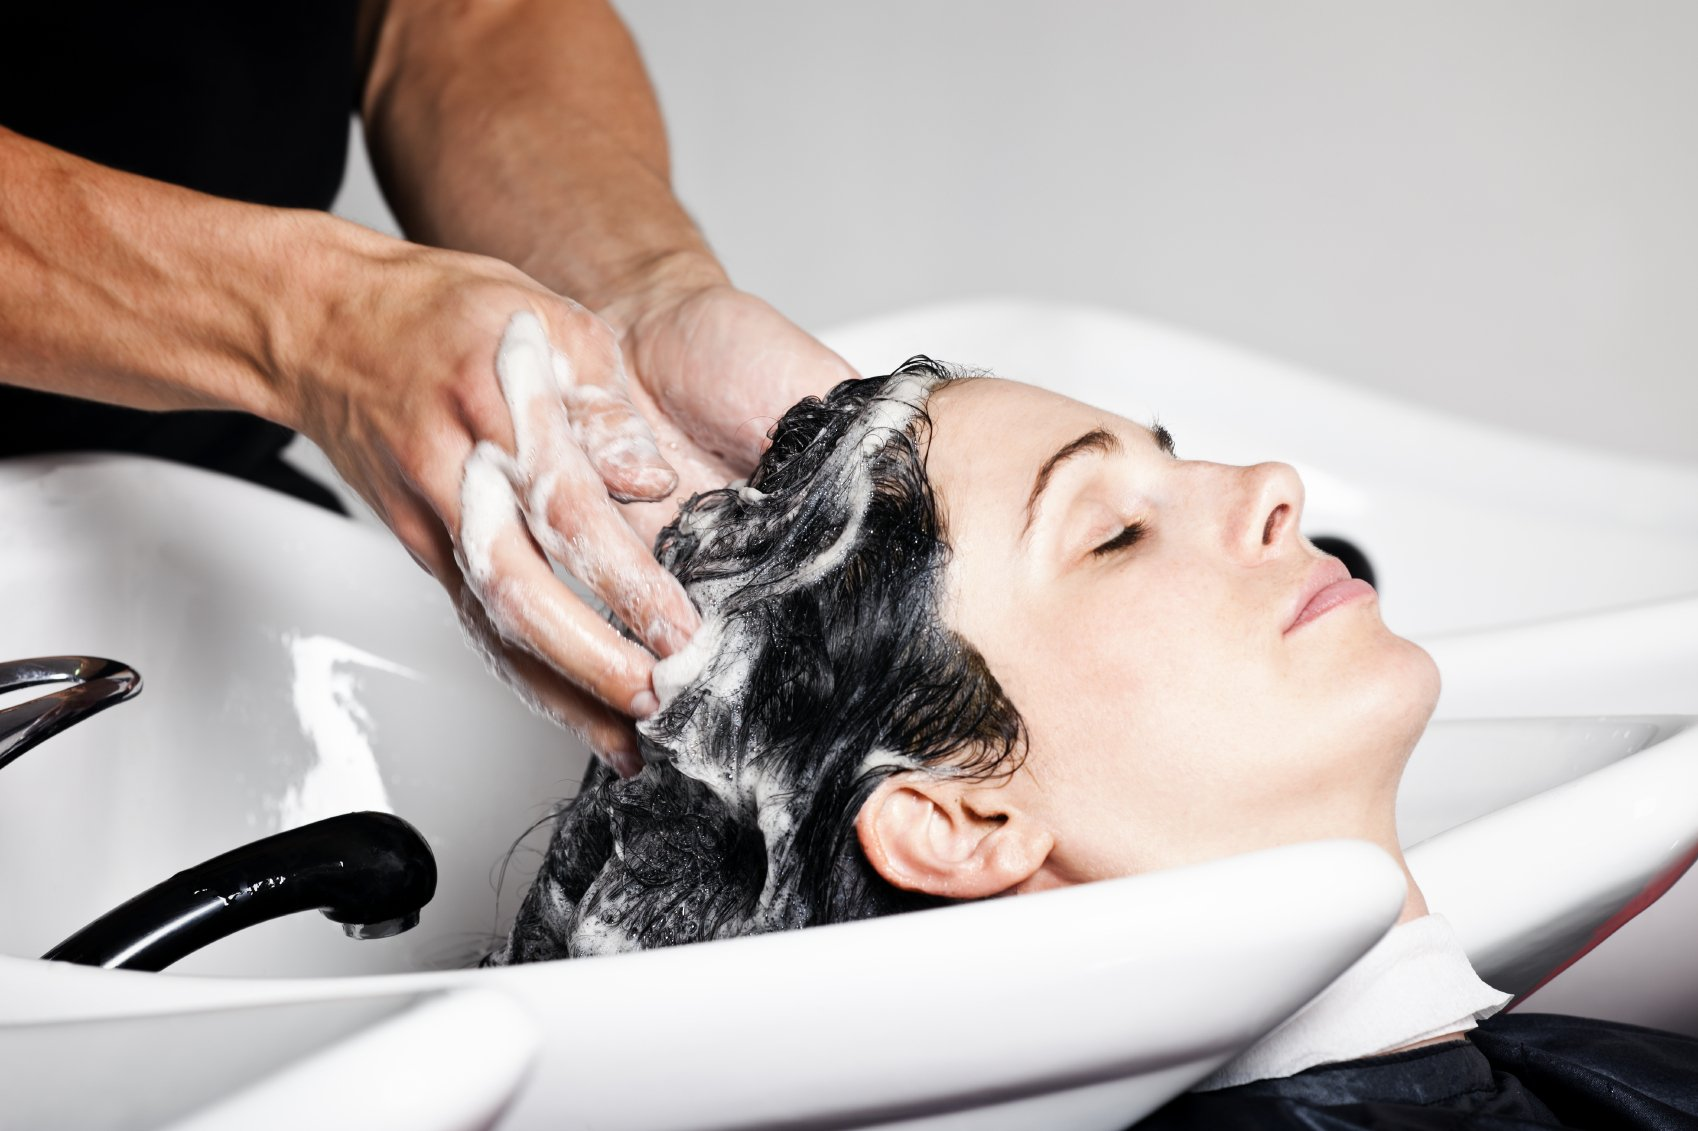 Apprenticeships in Hairdressing, Barbering, Customer Service and Warehouse & Storage